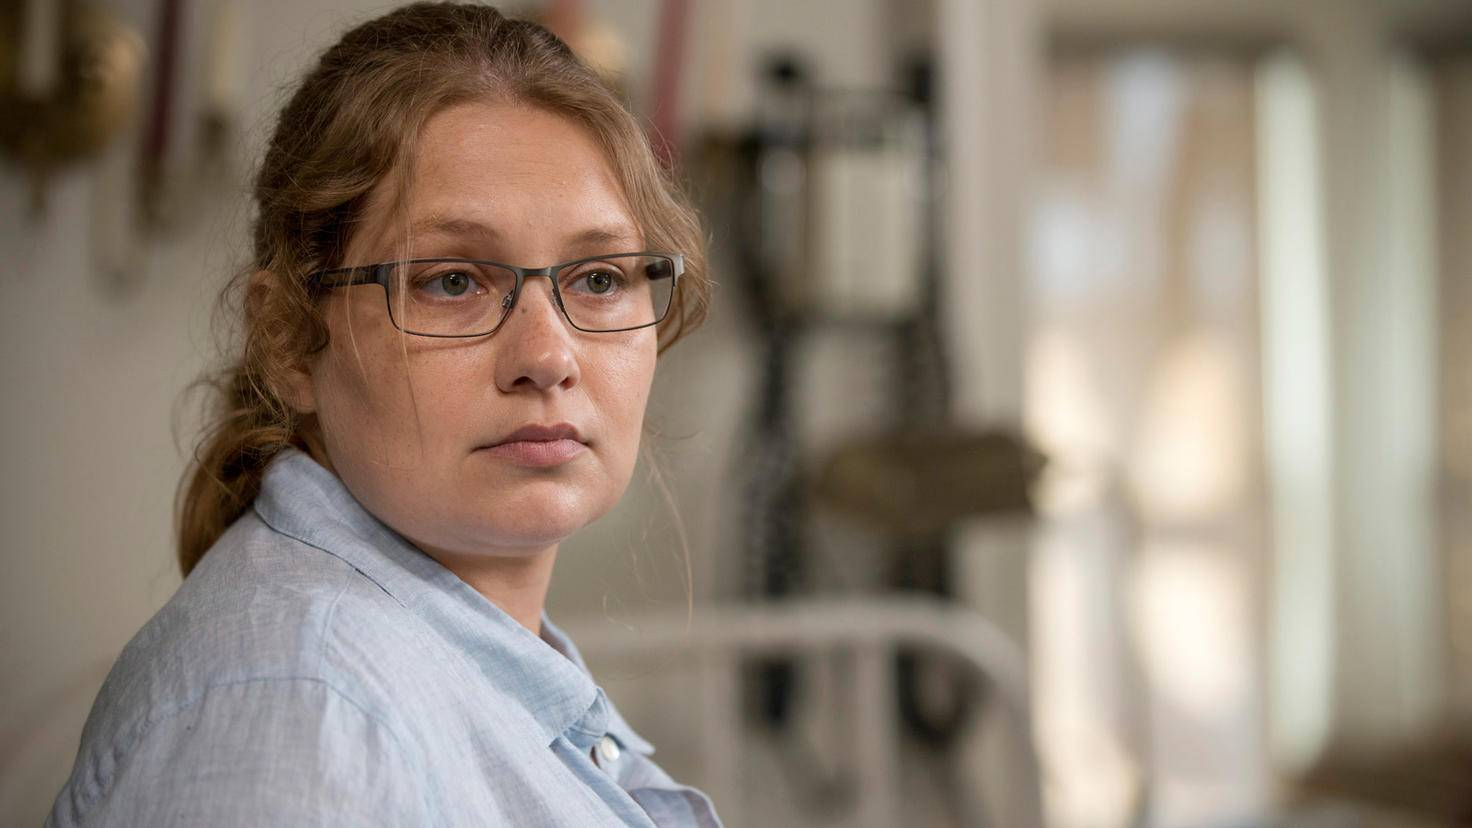 The Walking Dead-Denise-Merritt Wever-Gene Page-AMC-TWD_602_GP_0527_0037